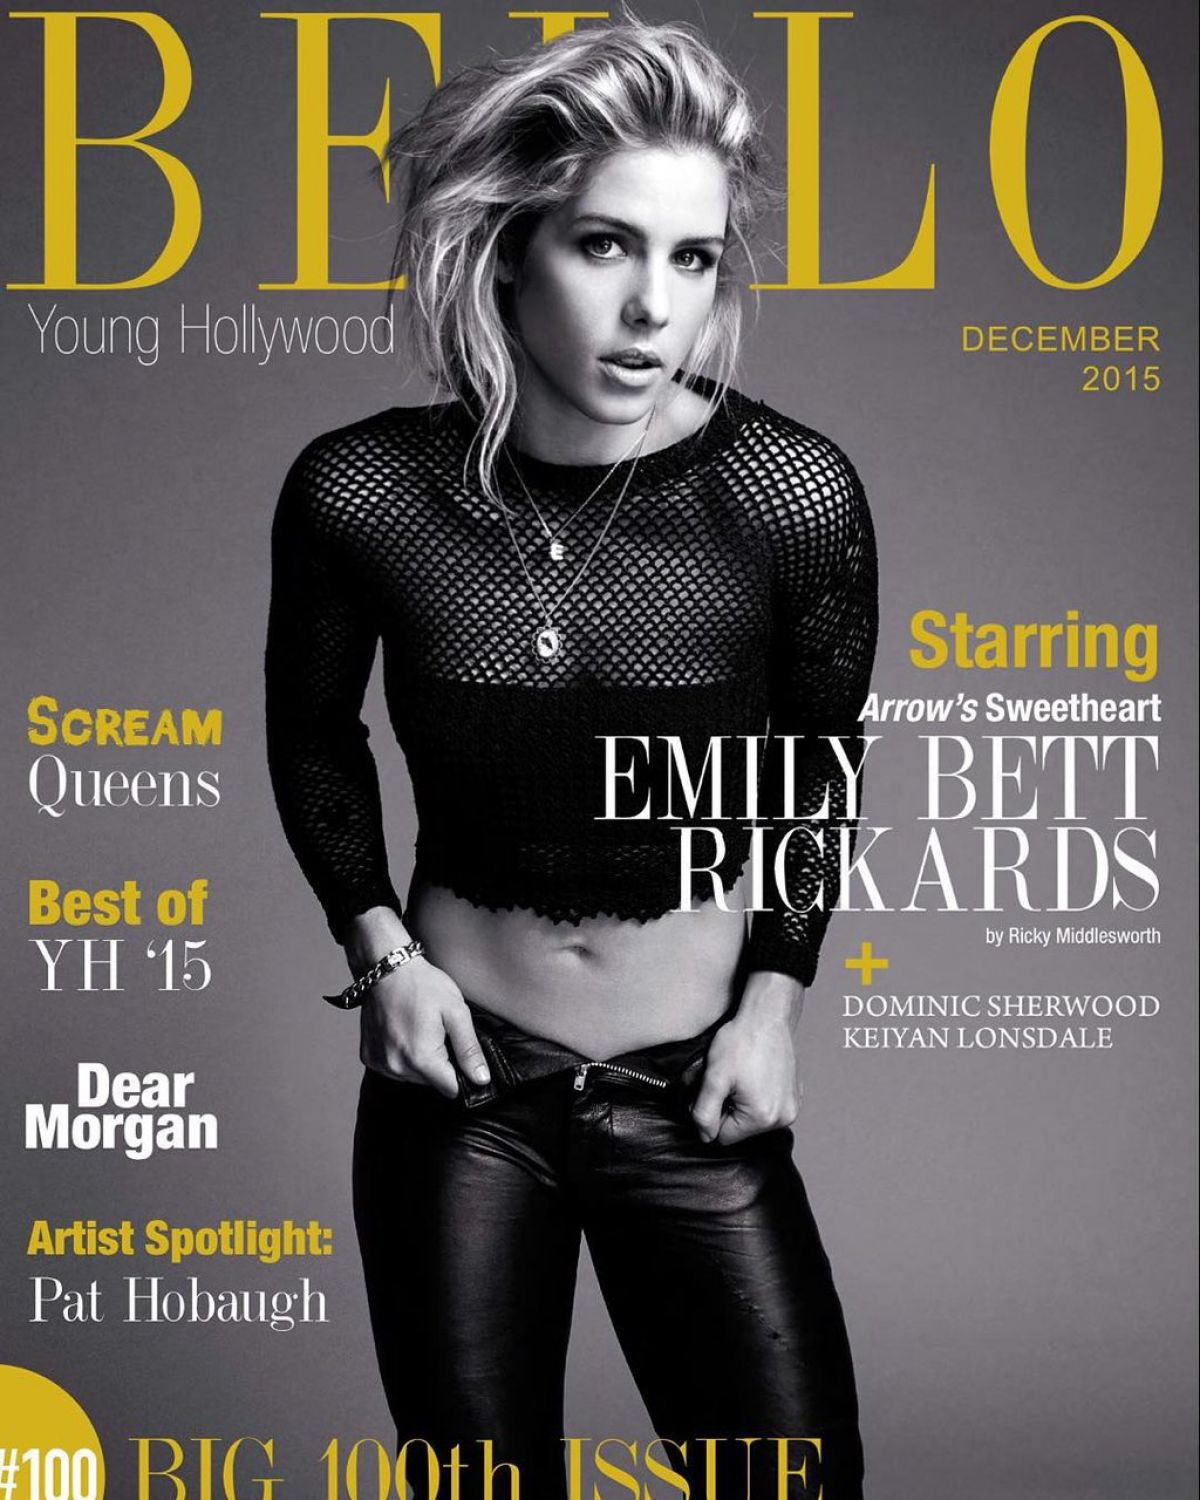 EMILY BETT RICKARDSin Bello Magazine, December 2015 Issue